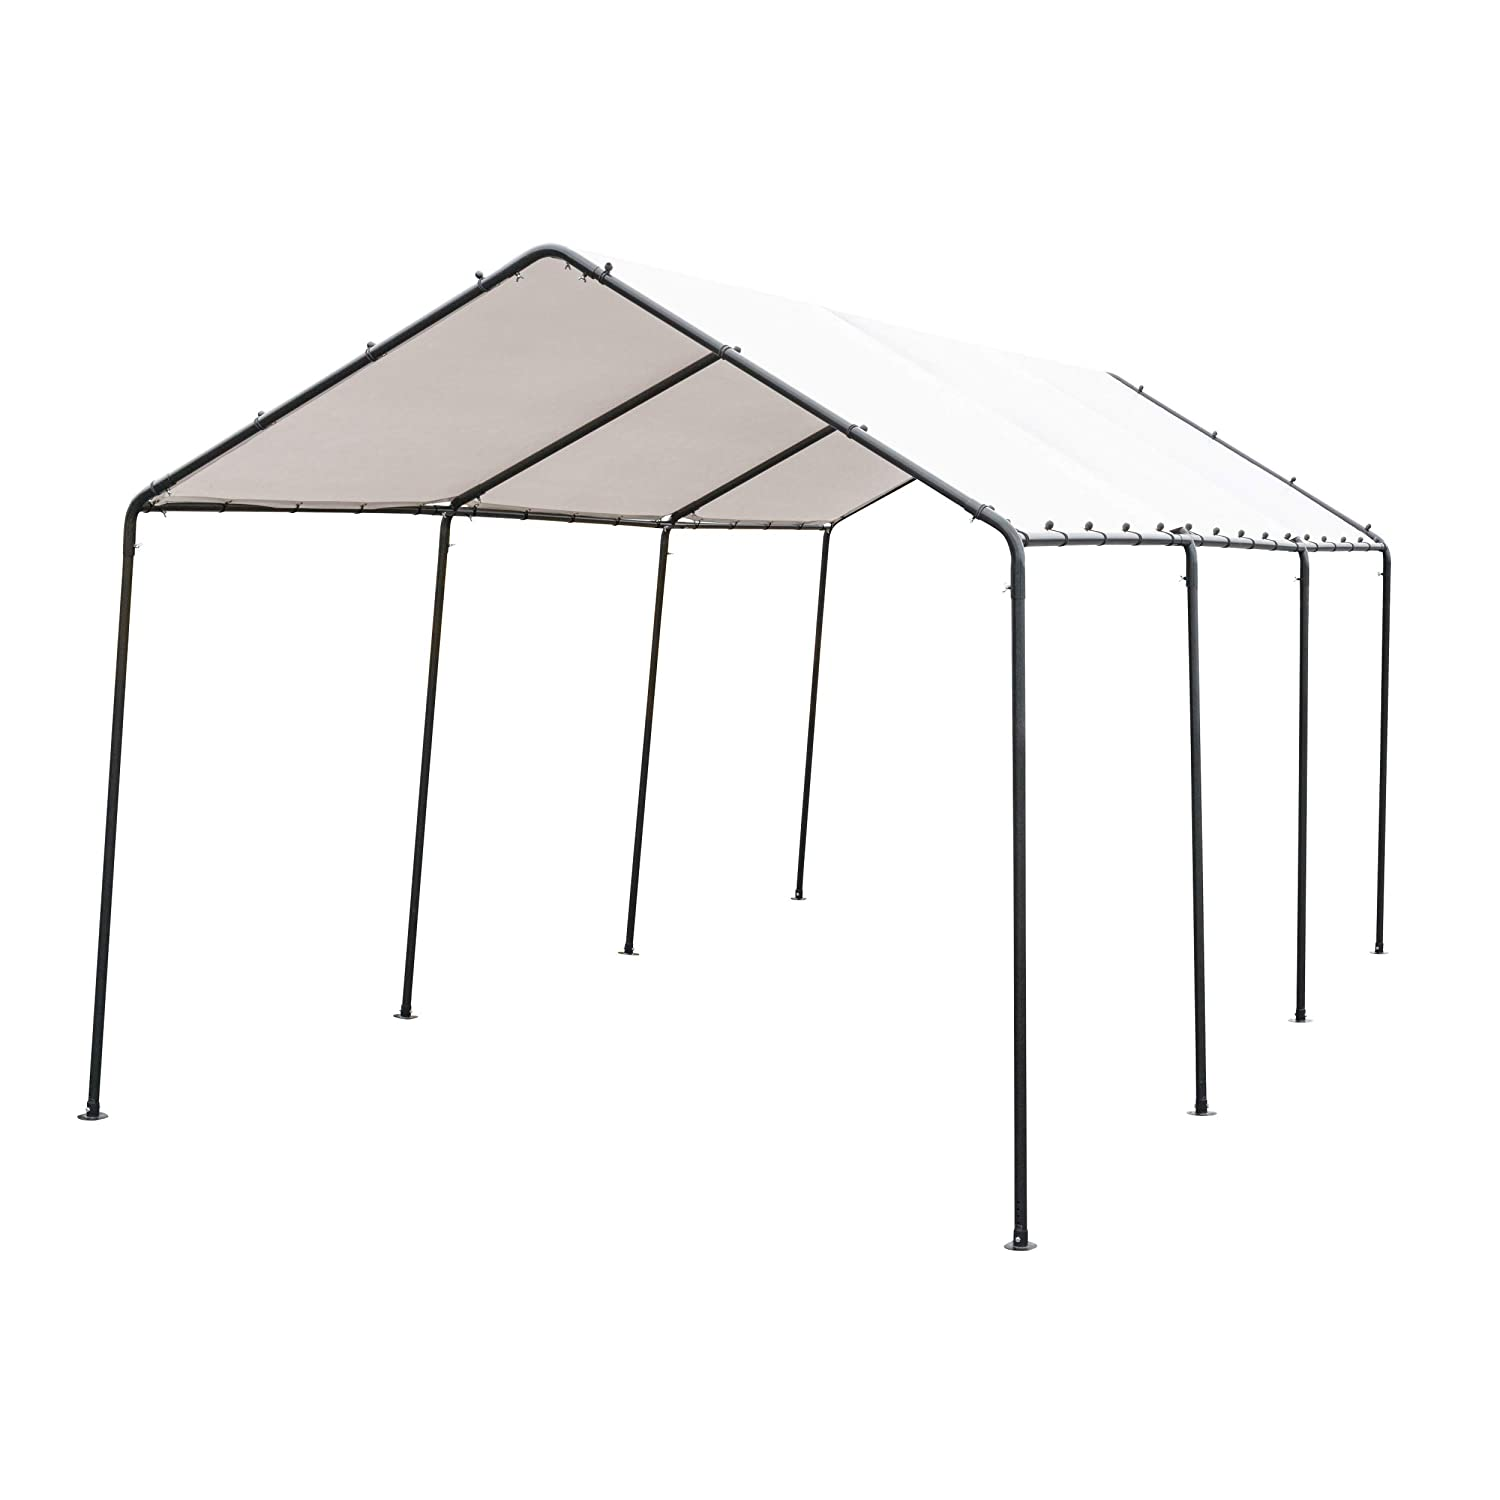 SORARA Carport 10' x 20' Outdoor Car Canopy Gazebo with 8 Steel Legs, White